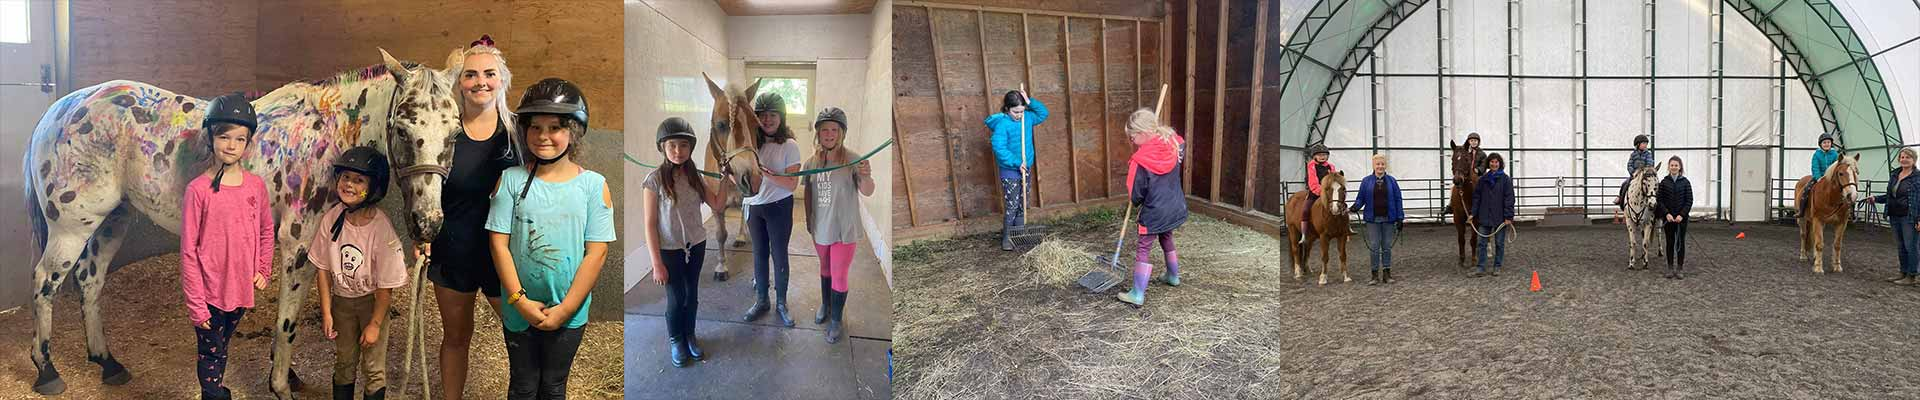 salt spring,saltspring,salt spring island,salt spring riding,salt spring island therapeutic,salt spring island riding,therapeutic riding,sstra,salt spring island horse,salt spring island horseback,salt spring island horse back,salt spring island equestrian